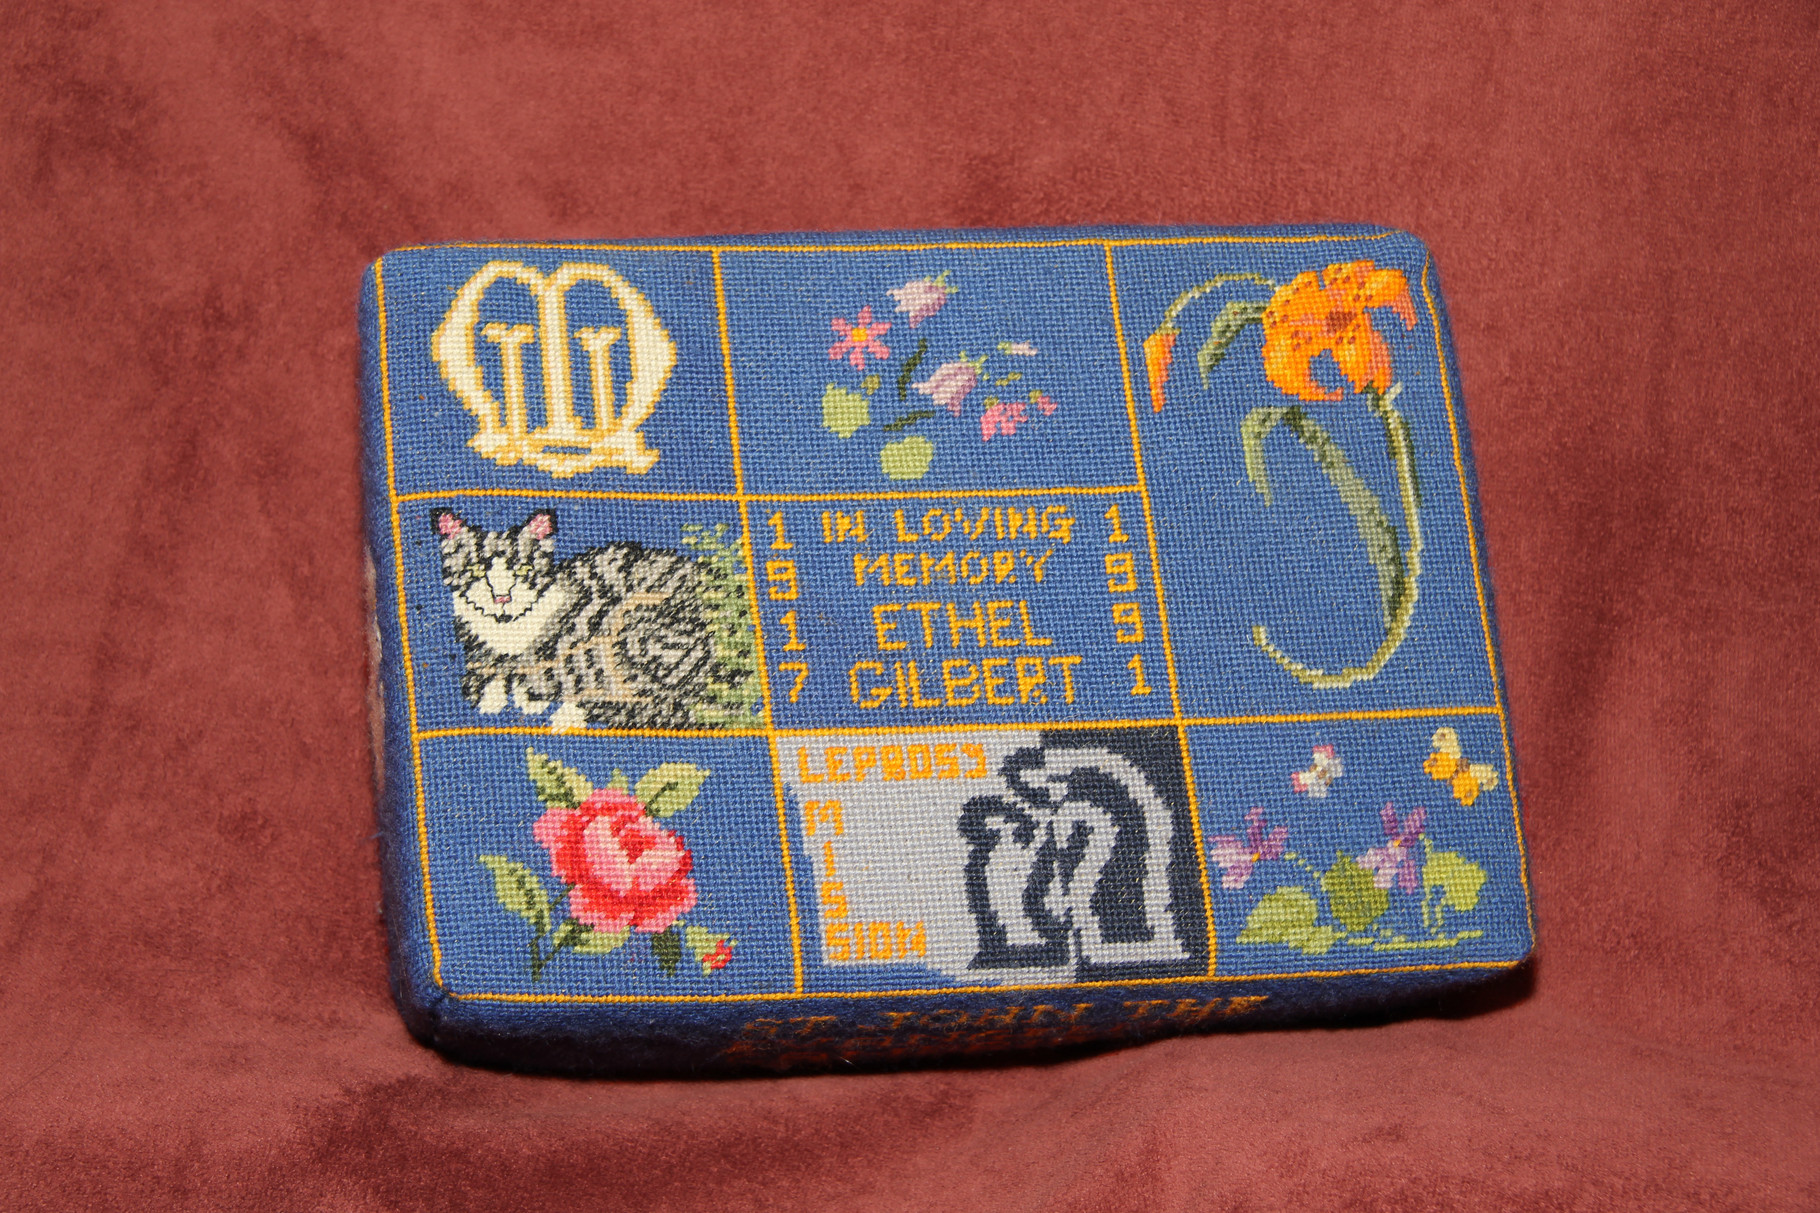 32. In memory of Ethel Gilbert (1917-1991) – donated by Paul and Daphne Gilbert and worked by Bridget Garton